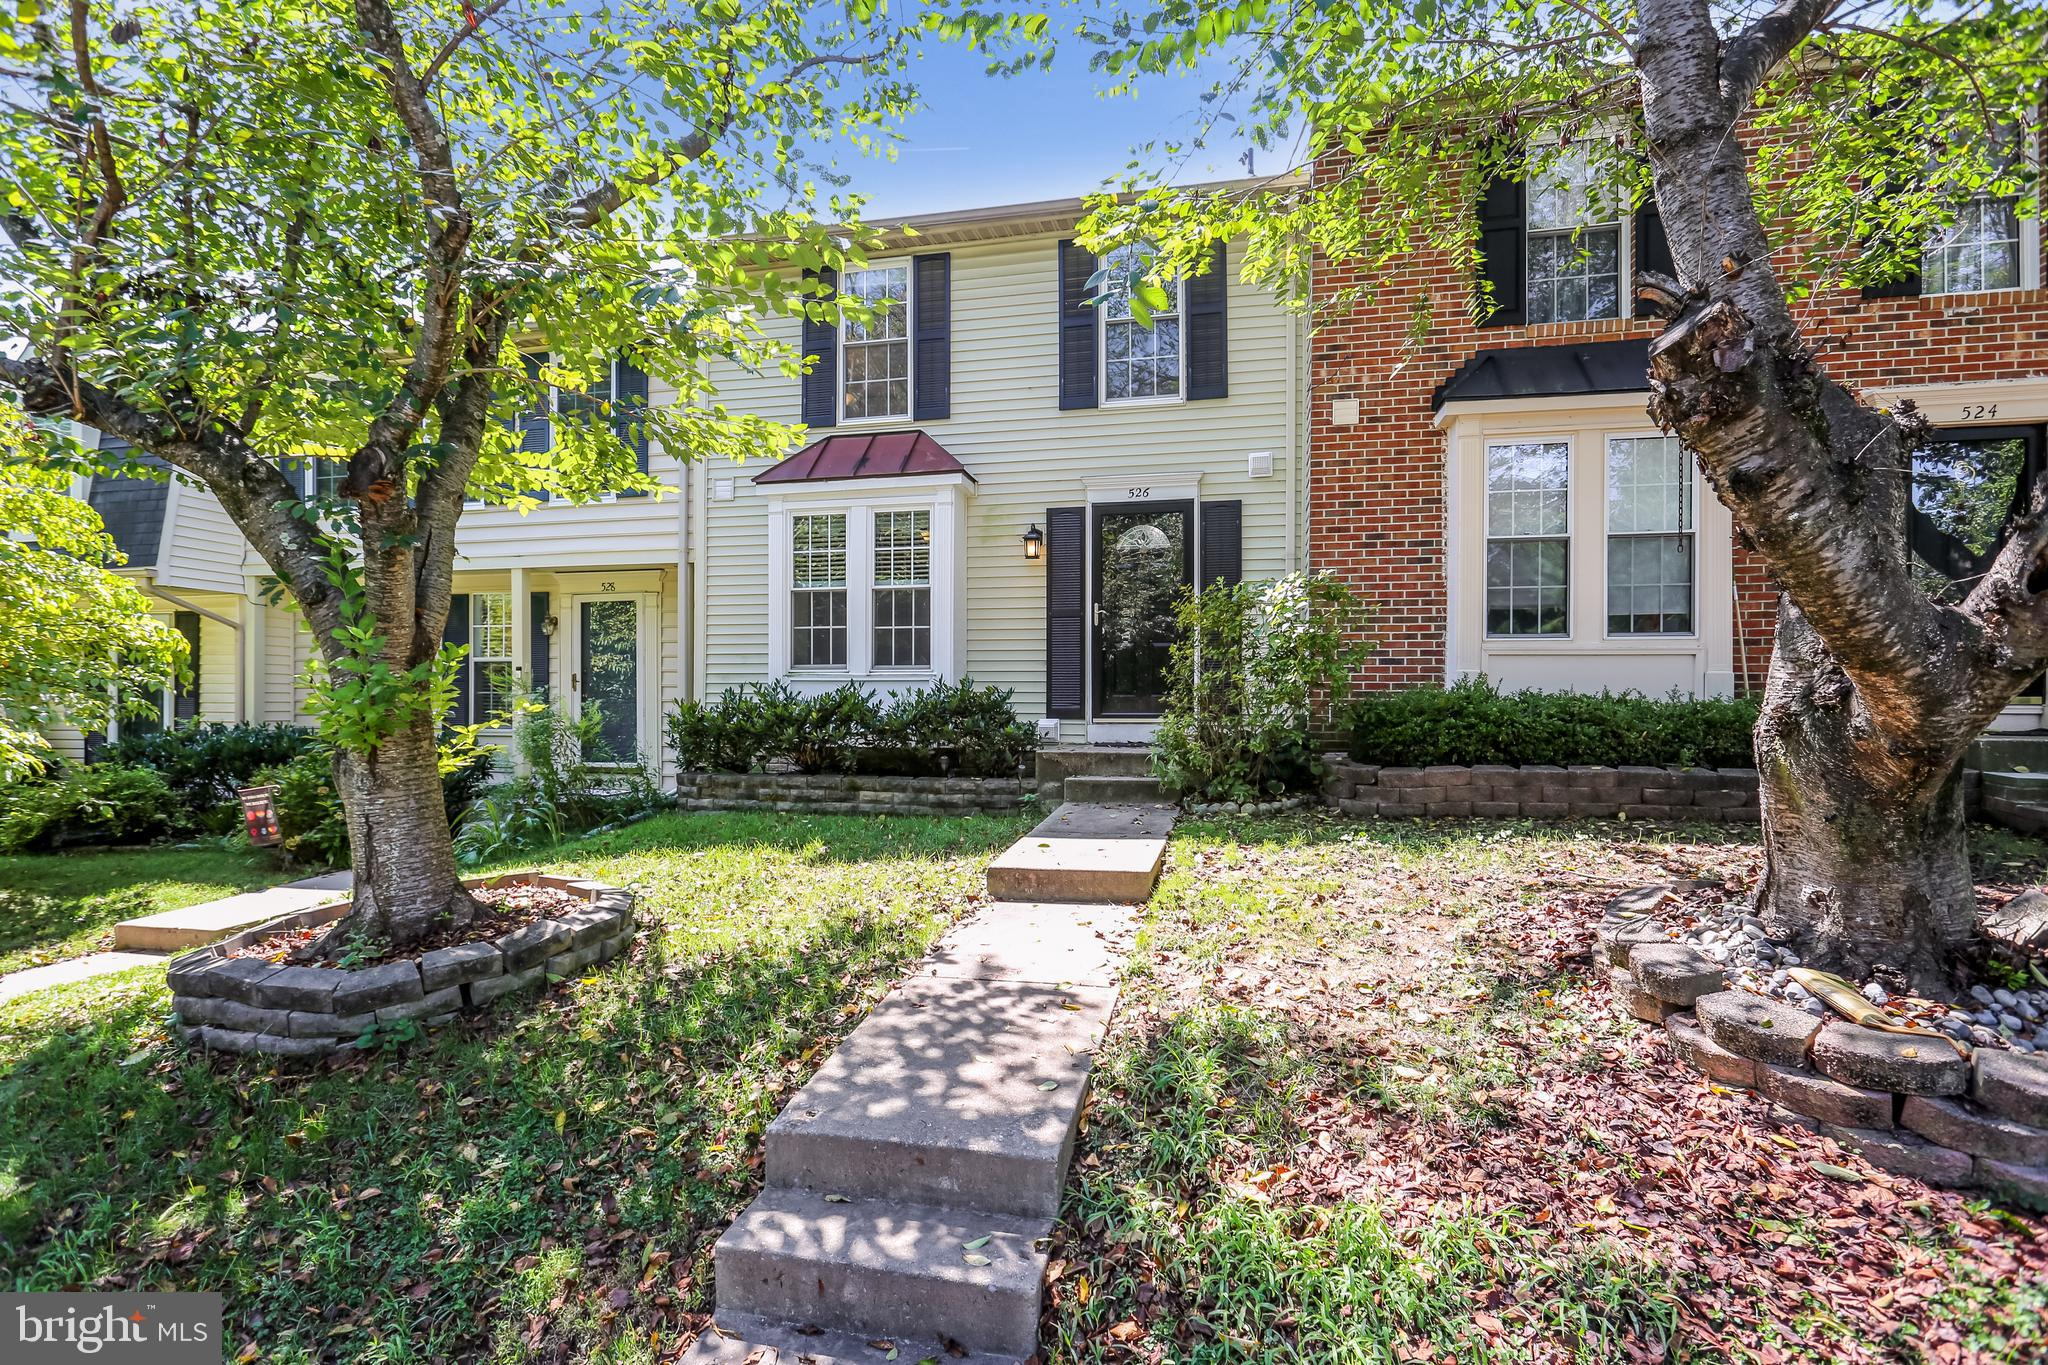 Open Sunday 9/19 from 12-3pm! Welcome to 526 Coral Reef Drive! Step inside and fall in love with thi